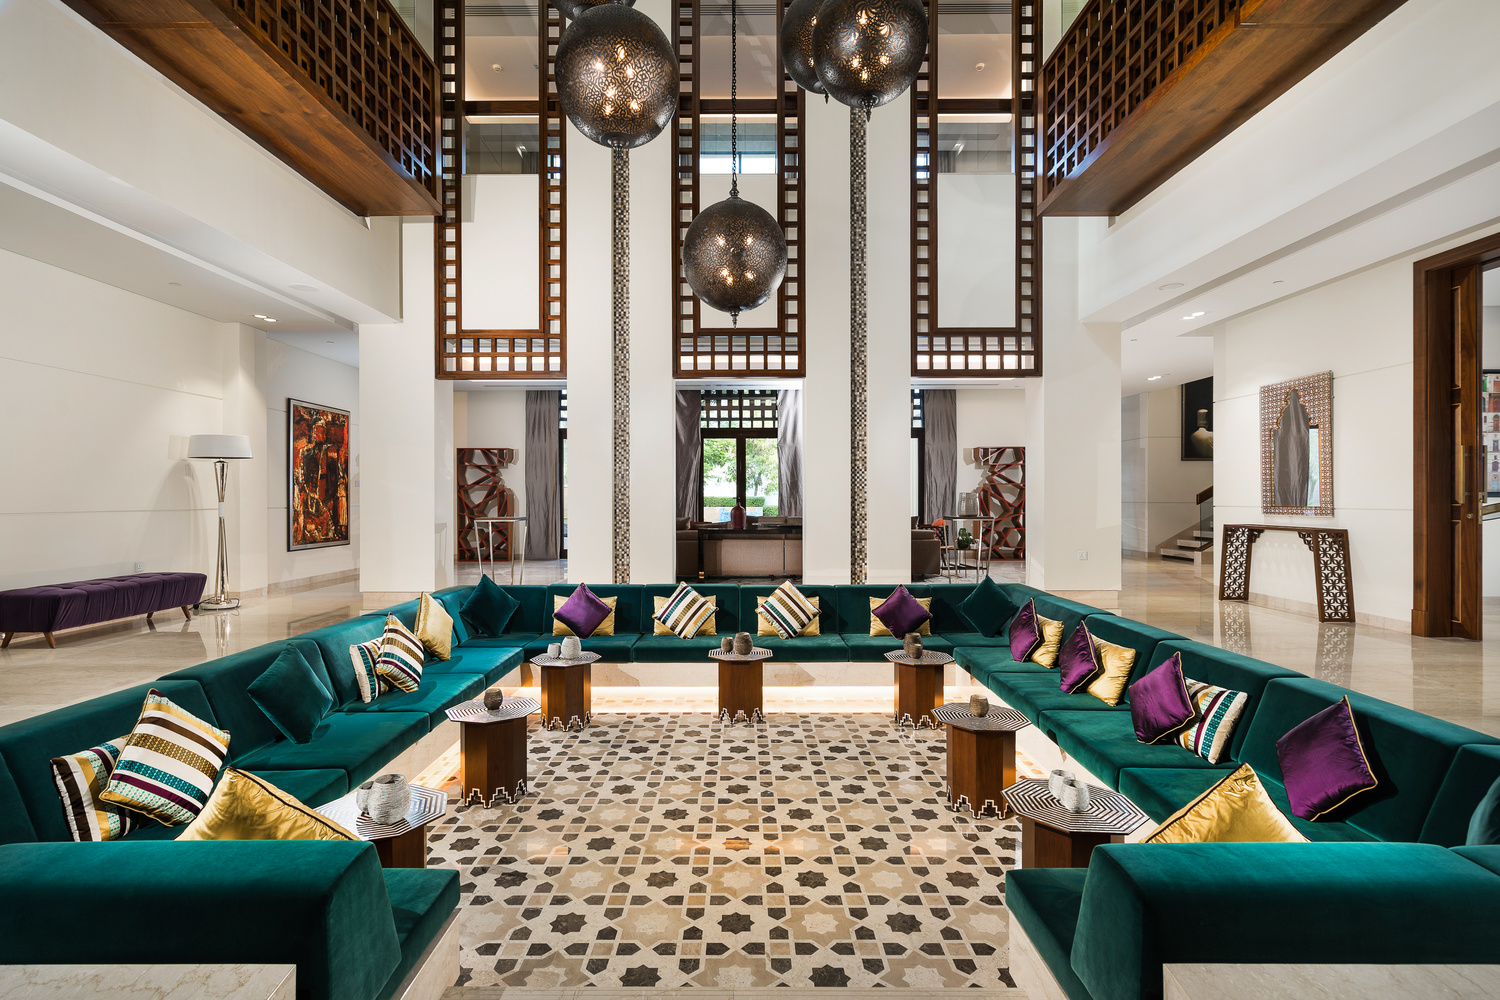 District One Contemporary Arabesque Mansion Lobby by Ben Preece